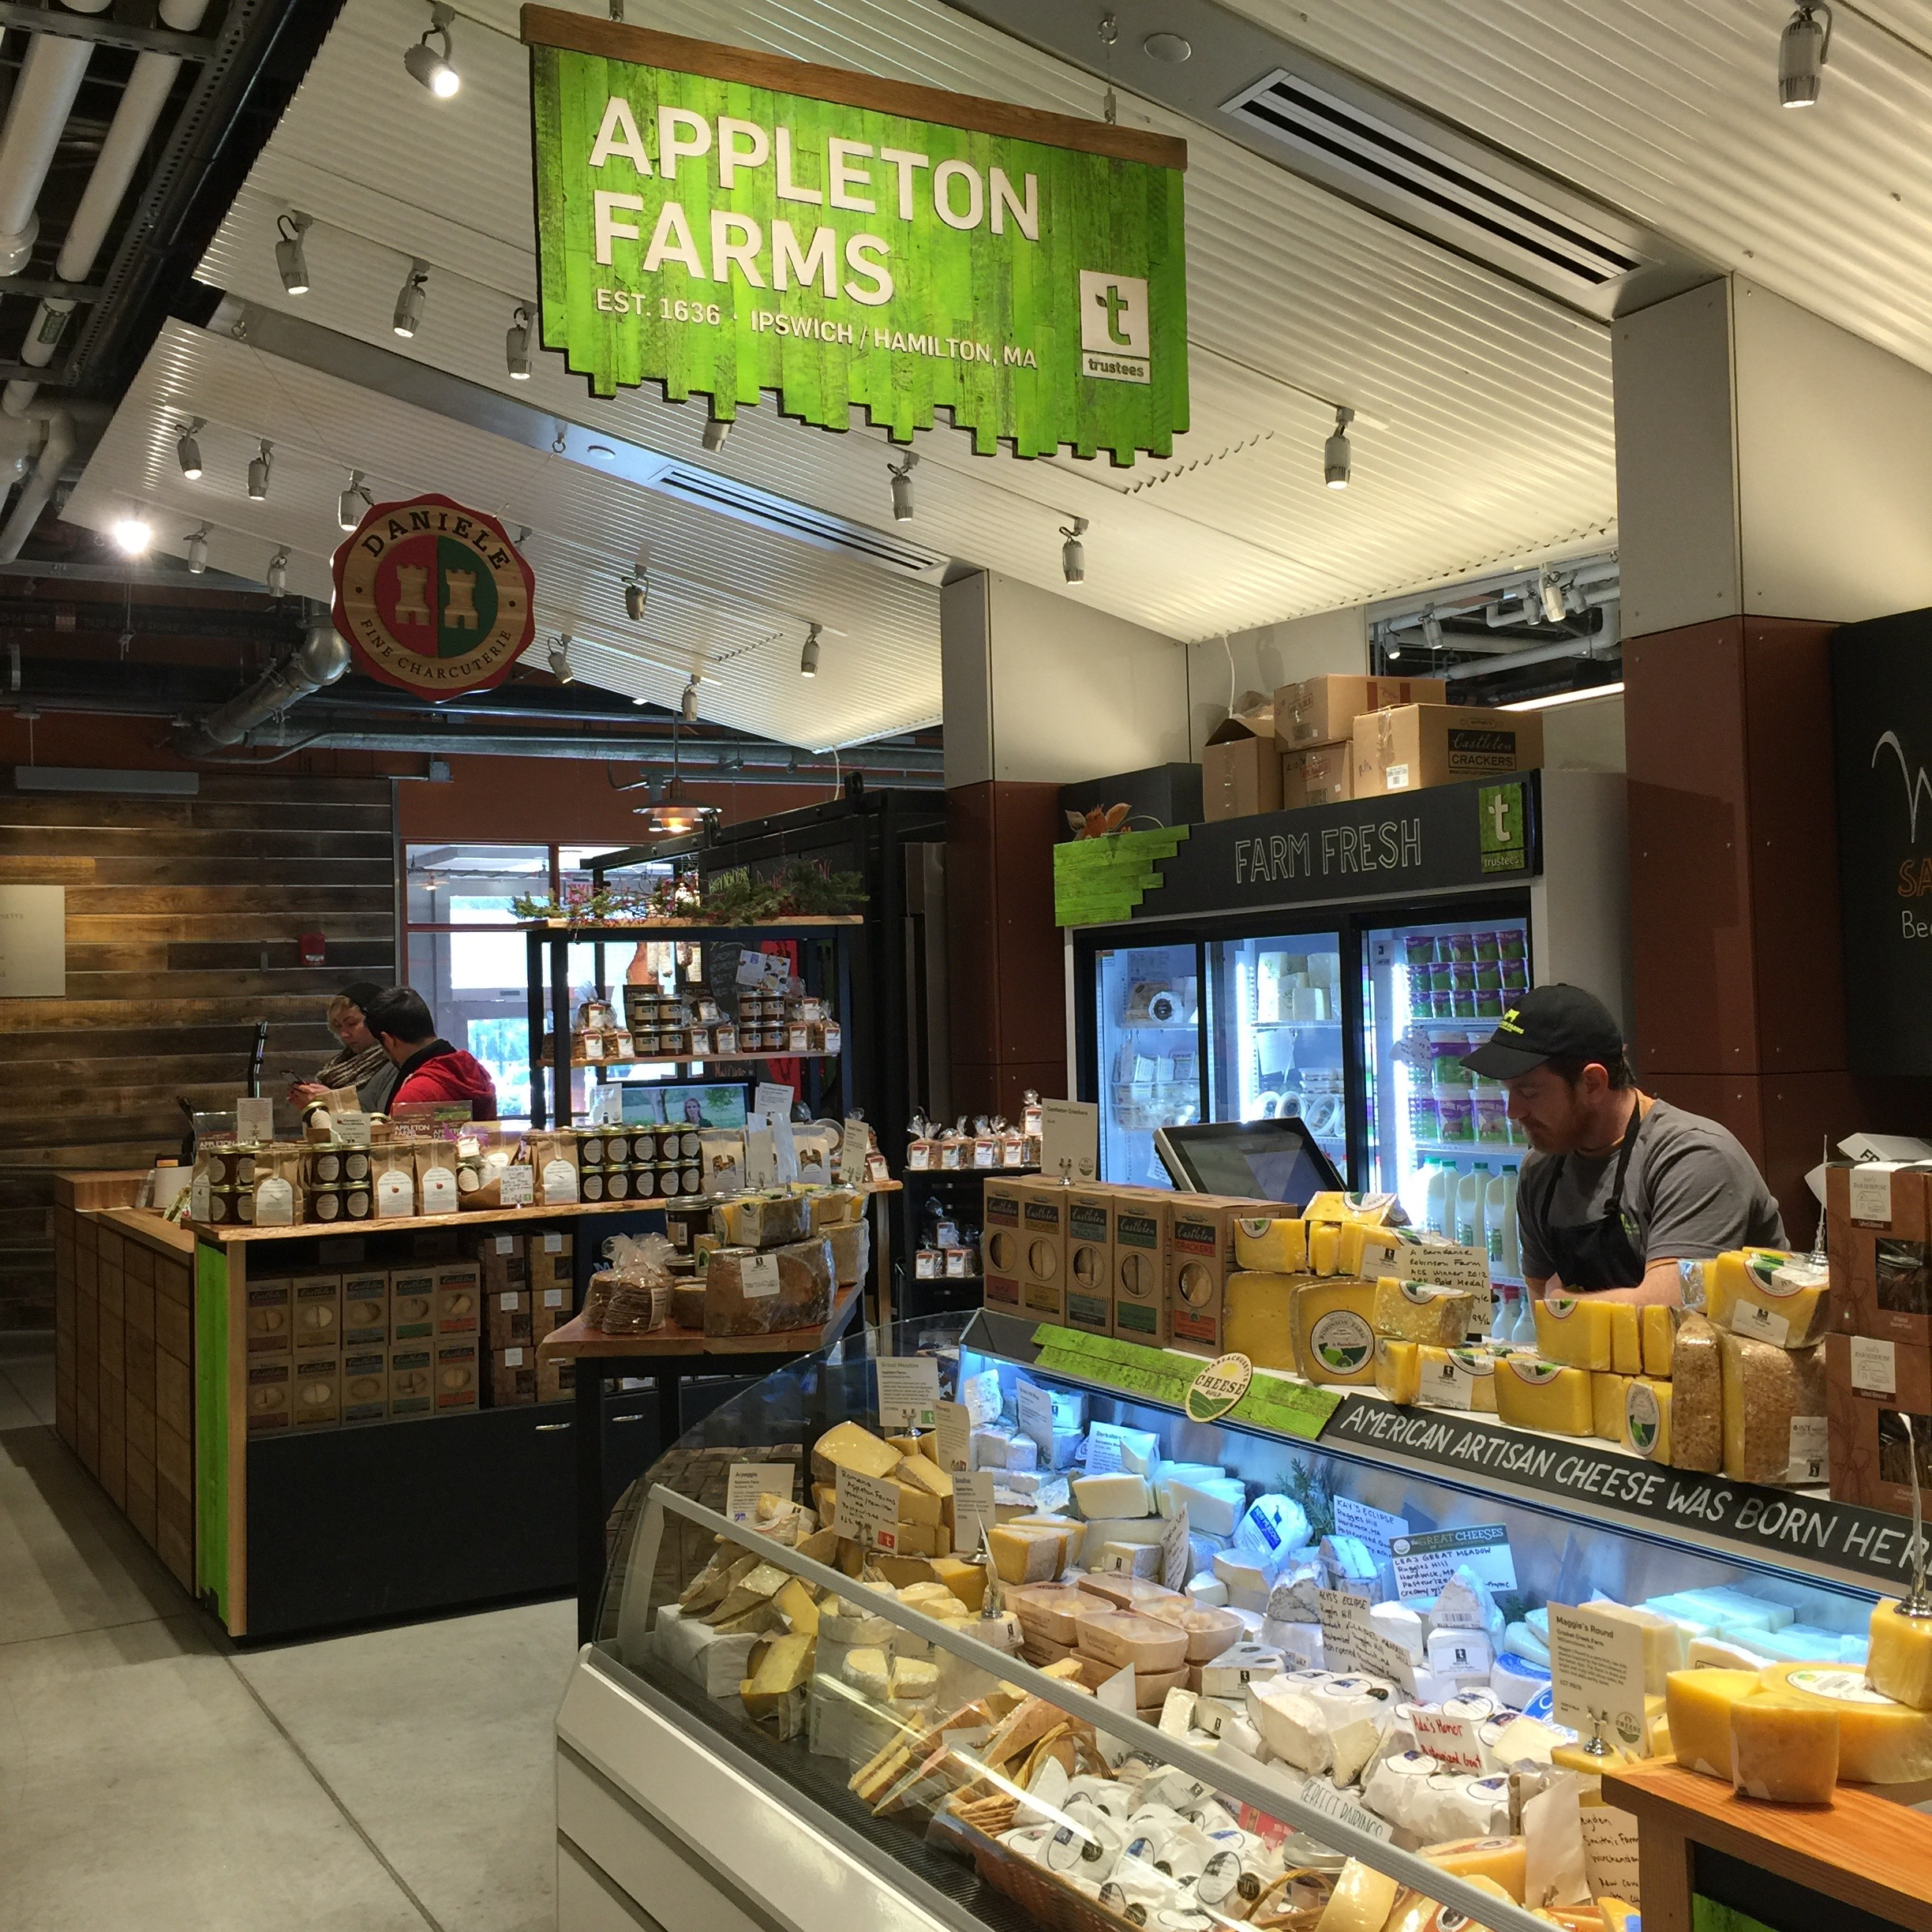 Appleton Farms sells a terrific variety of local cheeses